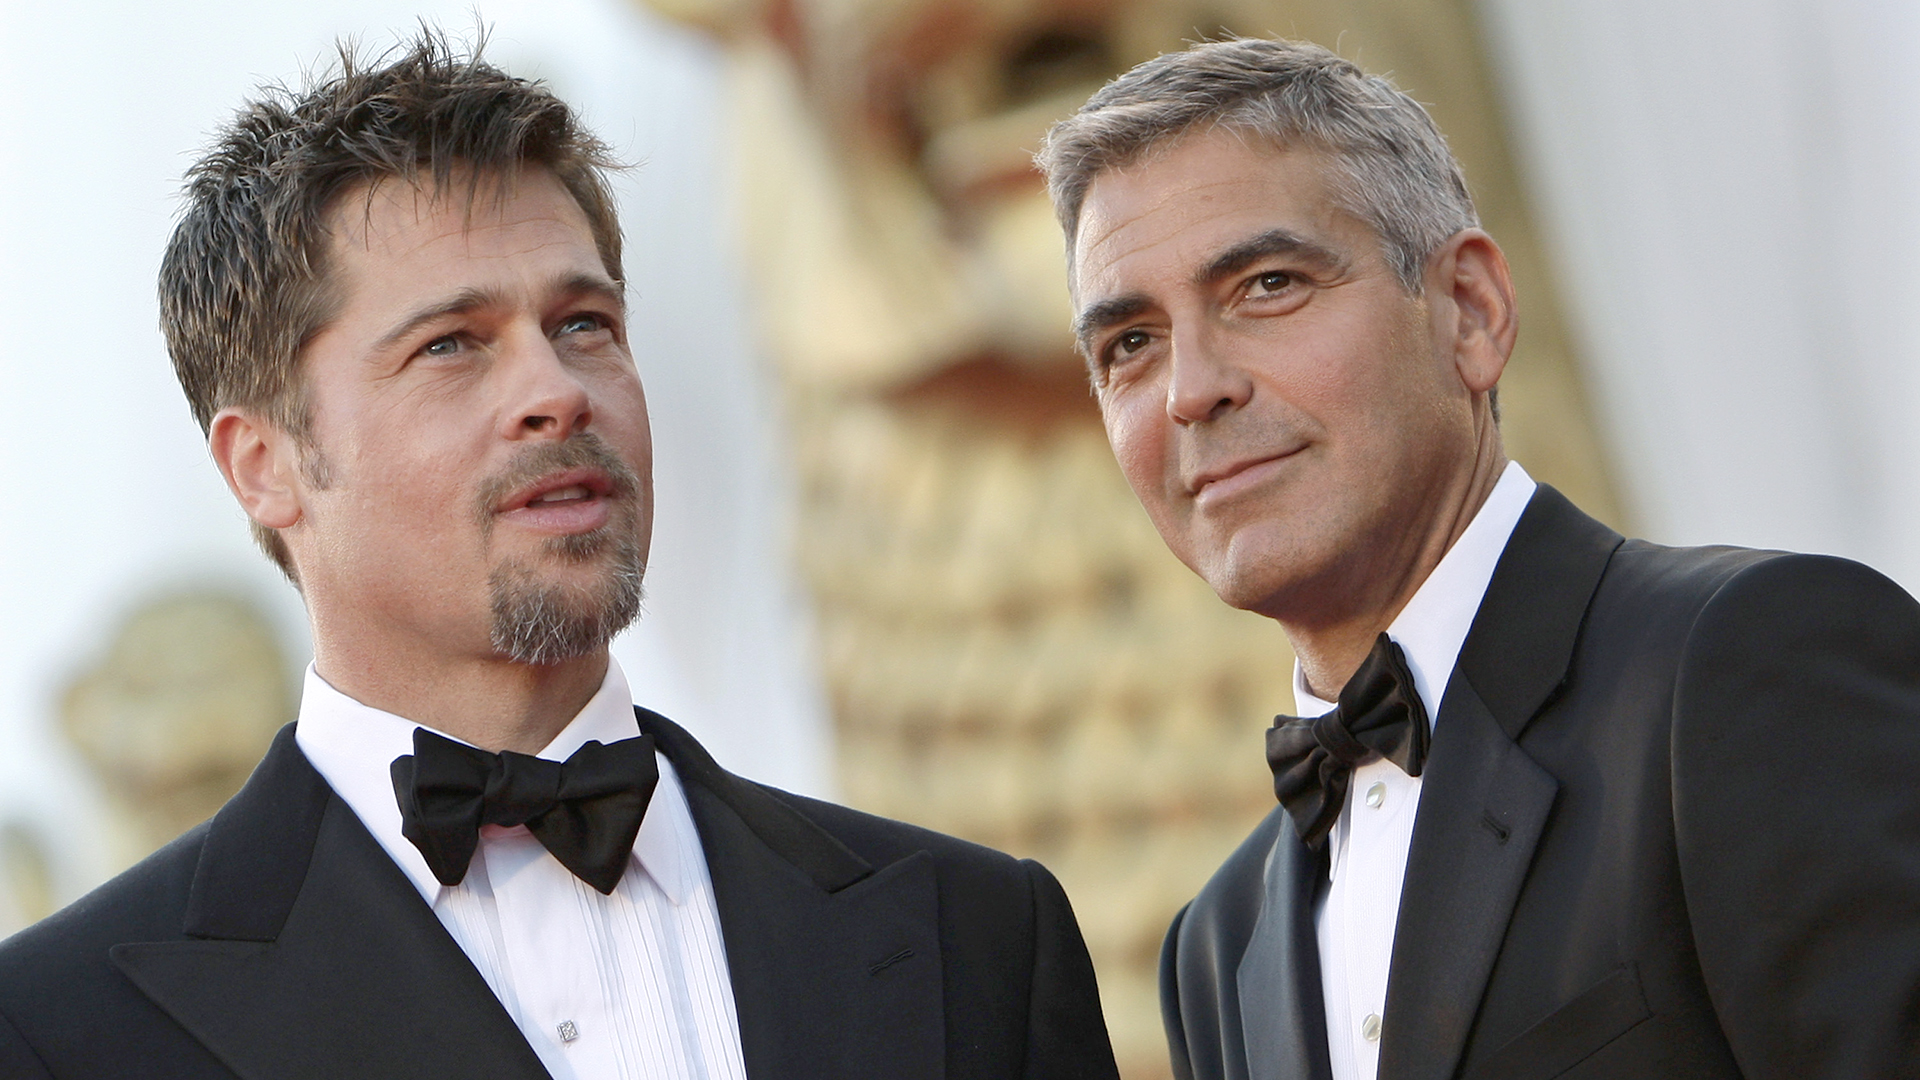 Watch George Clooney learn about Brad Pitt, Angelina Jolie ...